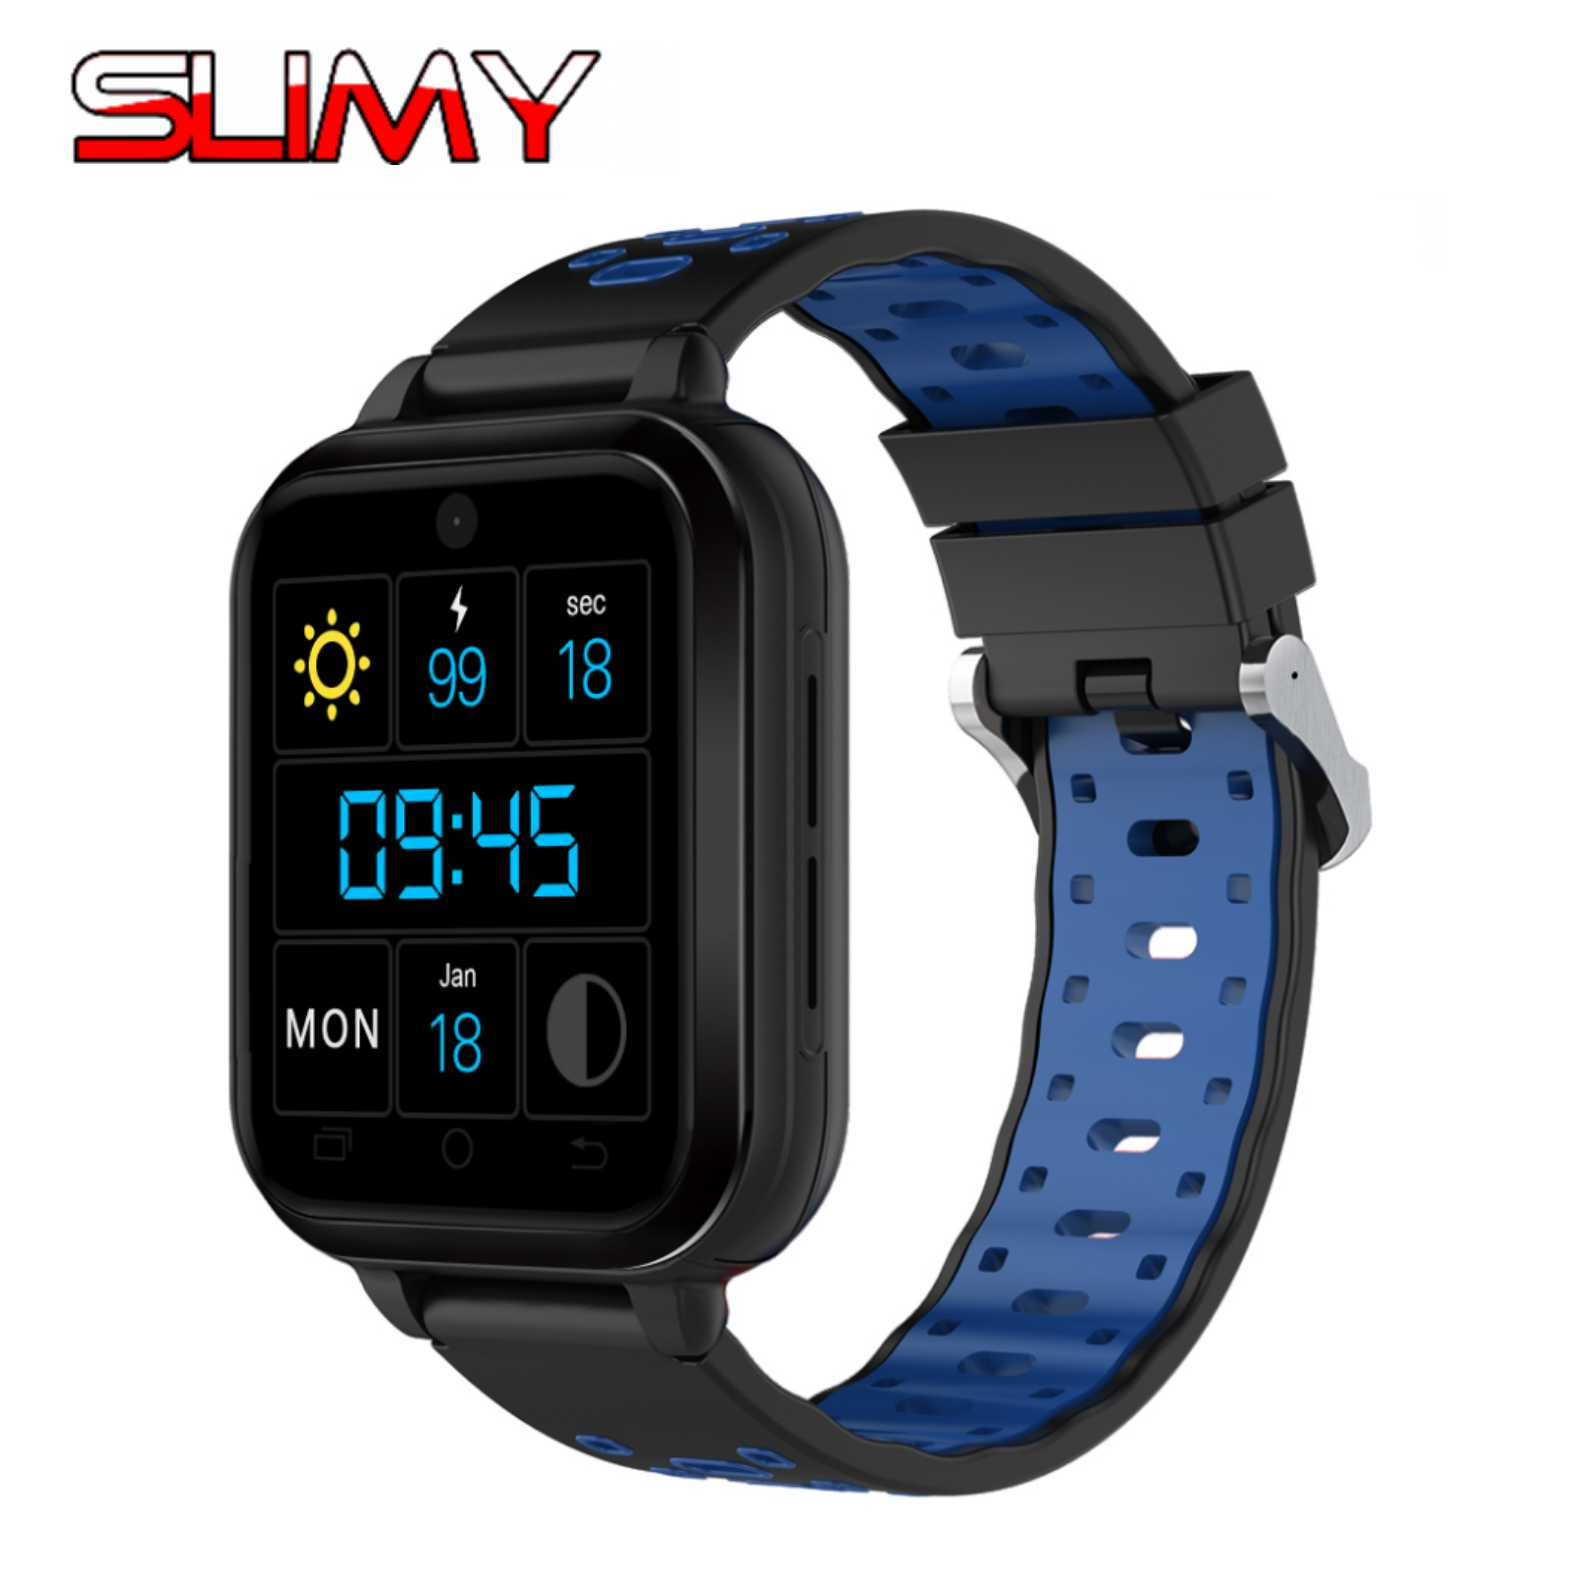 Slimy 4G LTE Wifi Smart Watch MTK6737 Quad Core 1G Ram 8G Rom Android 6.0 Heart Rate Monitor Camera SIM Card GPS for Women Men 4g gps android 6 0 smart watch m5 mtk6737 heart rate monitor support sim card camera business smartwatch for men women 2018 gift